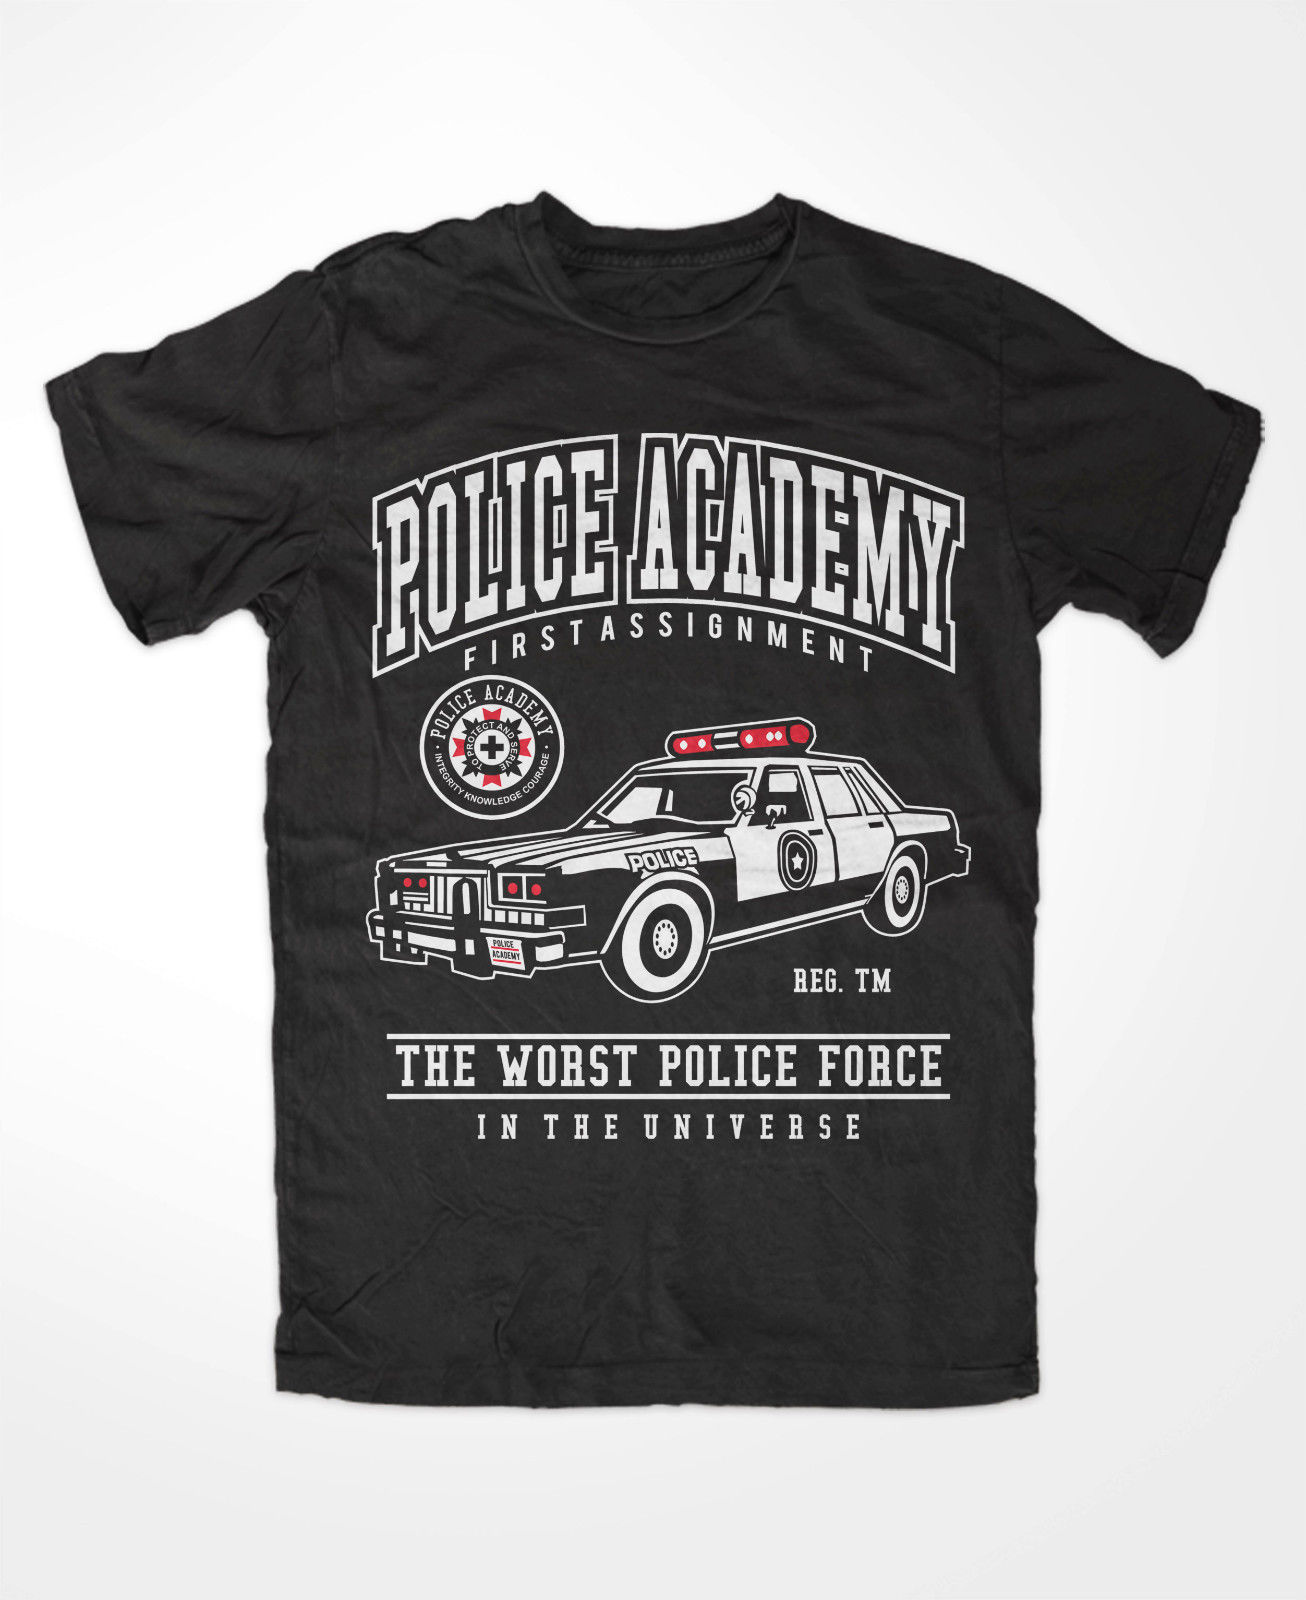 T Shirt Men O-Neck Tops Tees Summer Police Academy Premium-Tshirt ,80`S, Lassard, Retro,Cop, Comedy, Movie,Hightowermens Tees image